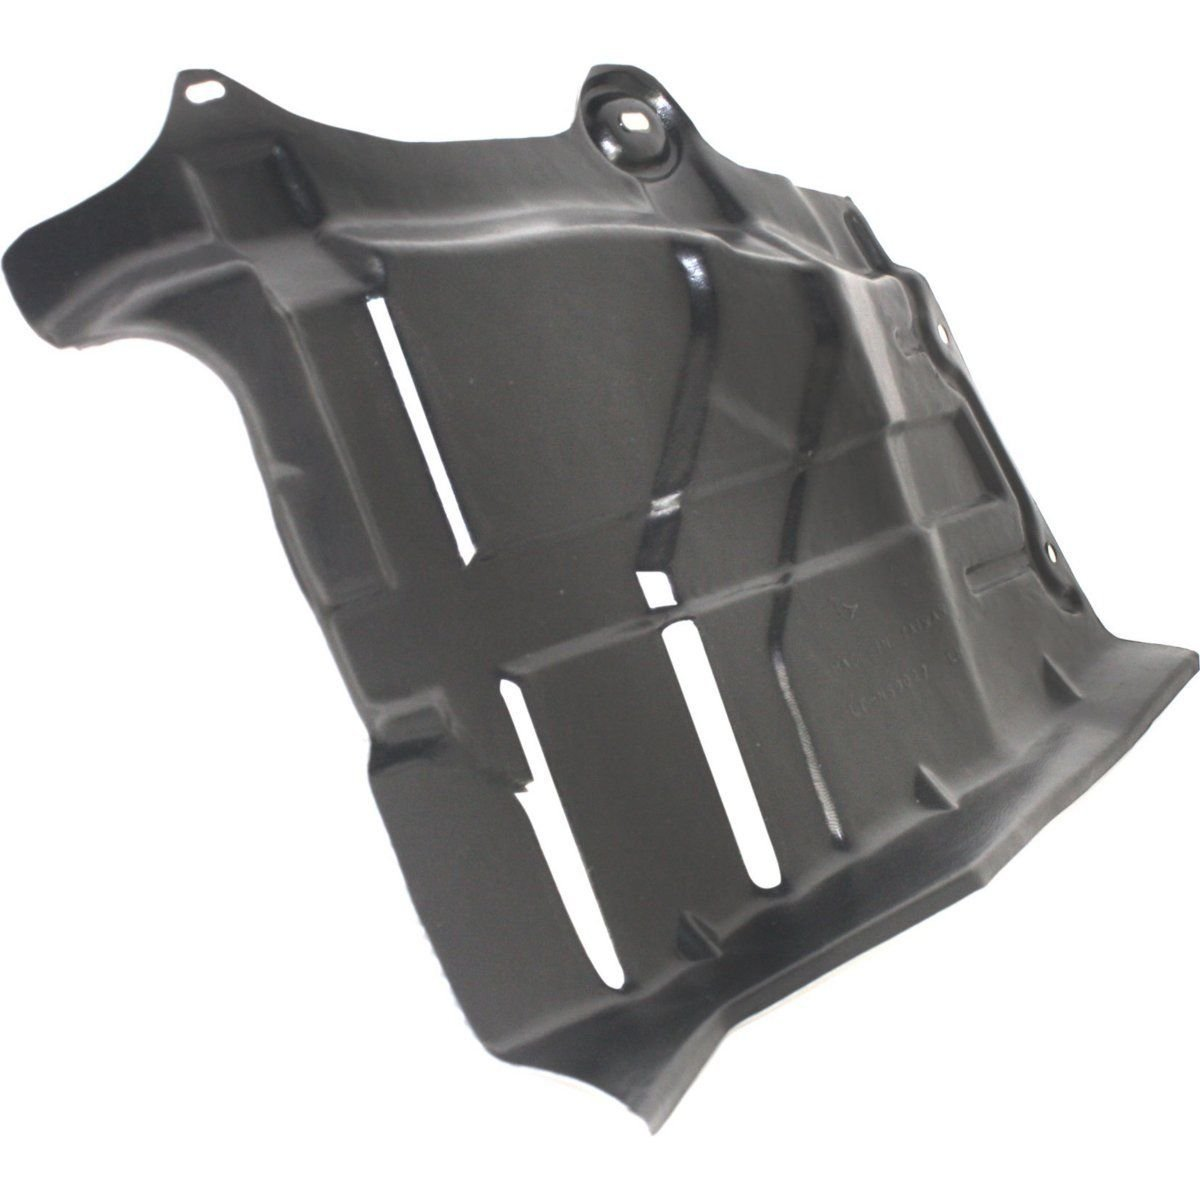 Apron Cover NI1228120 64839CK010 New Left Driver Side Engine Splash Shield For 2004-2009 Nissan Quest Under Cover